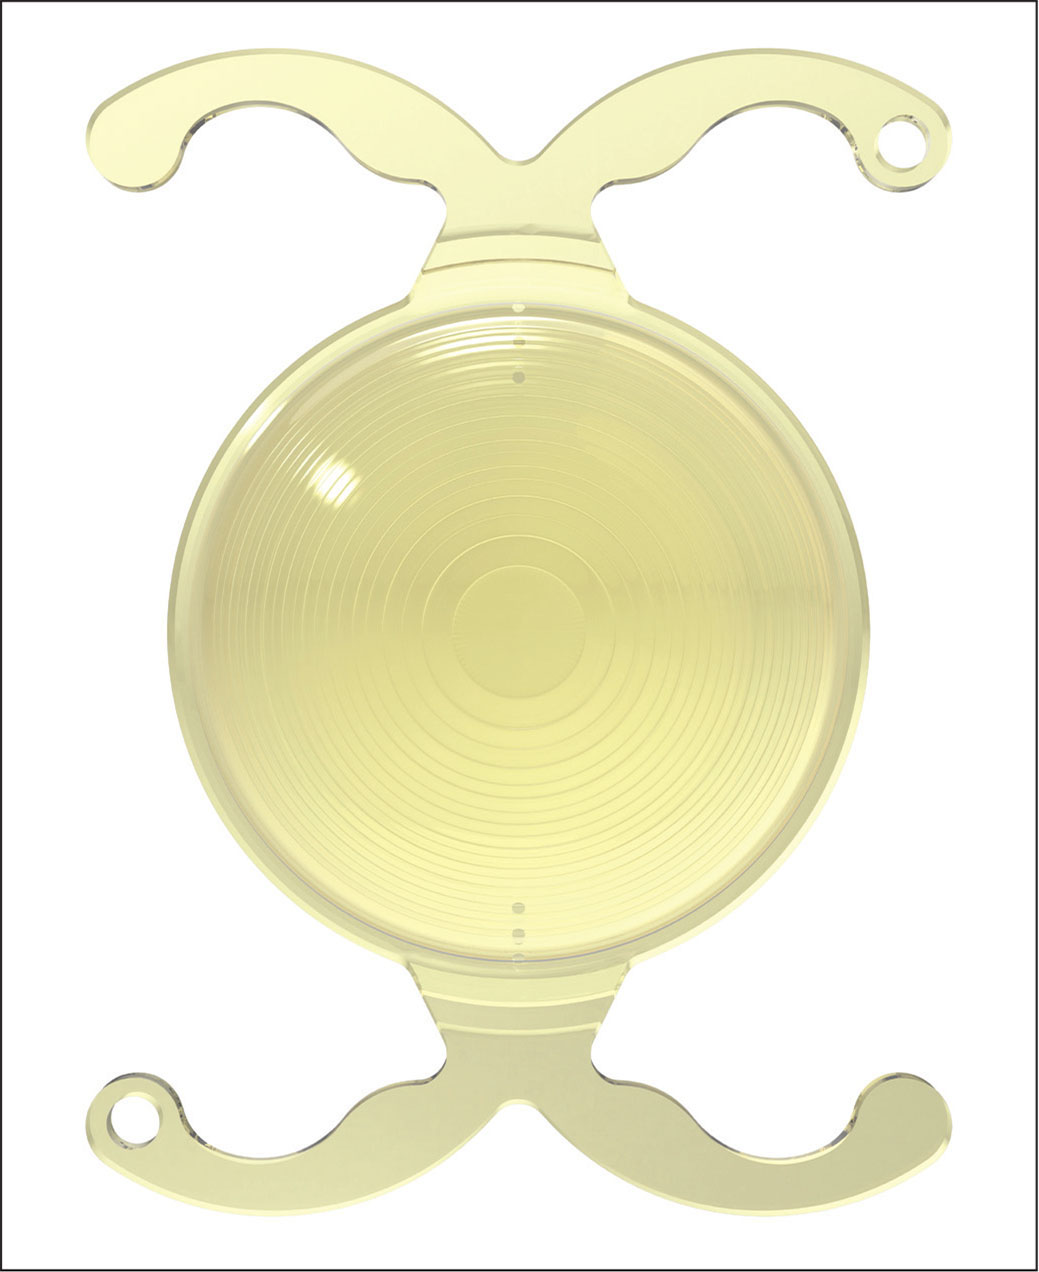 Image of the trifocal toric intraocular lens (FineVision Toric Pod FT; PhysIOL, Liège, Belgium).